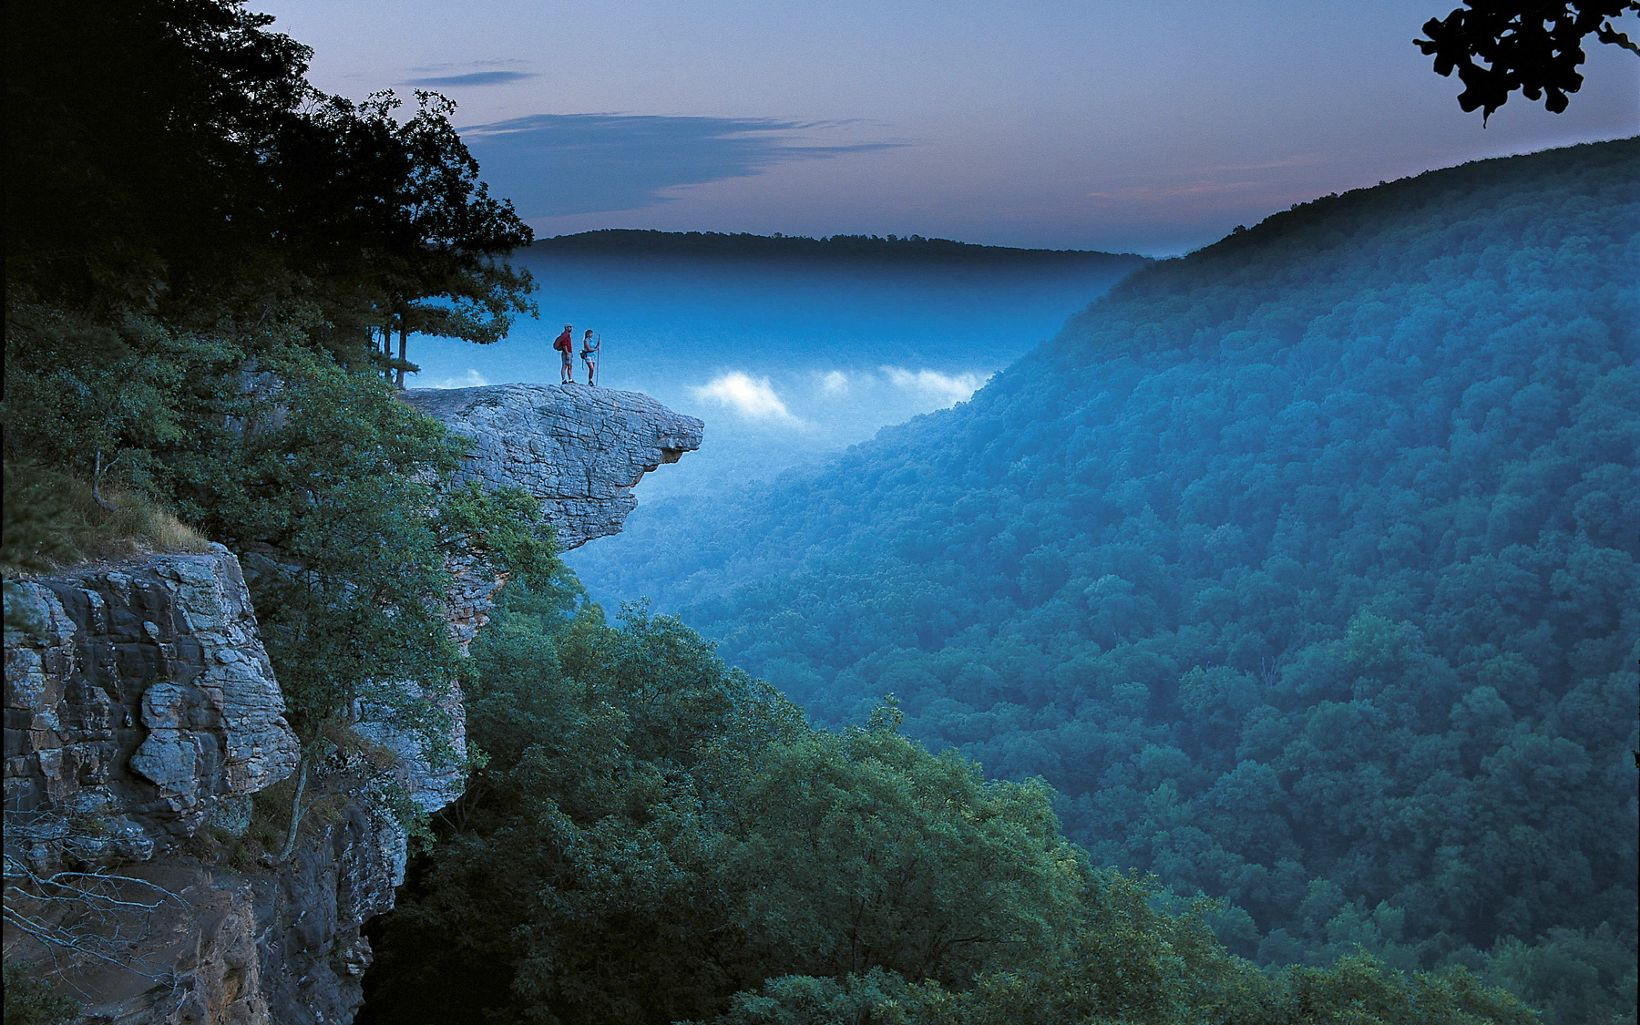 The view overlooking the Ozarks from Whitaker Point is breathtaking.